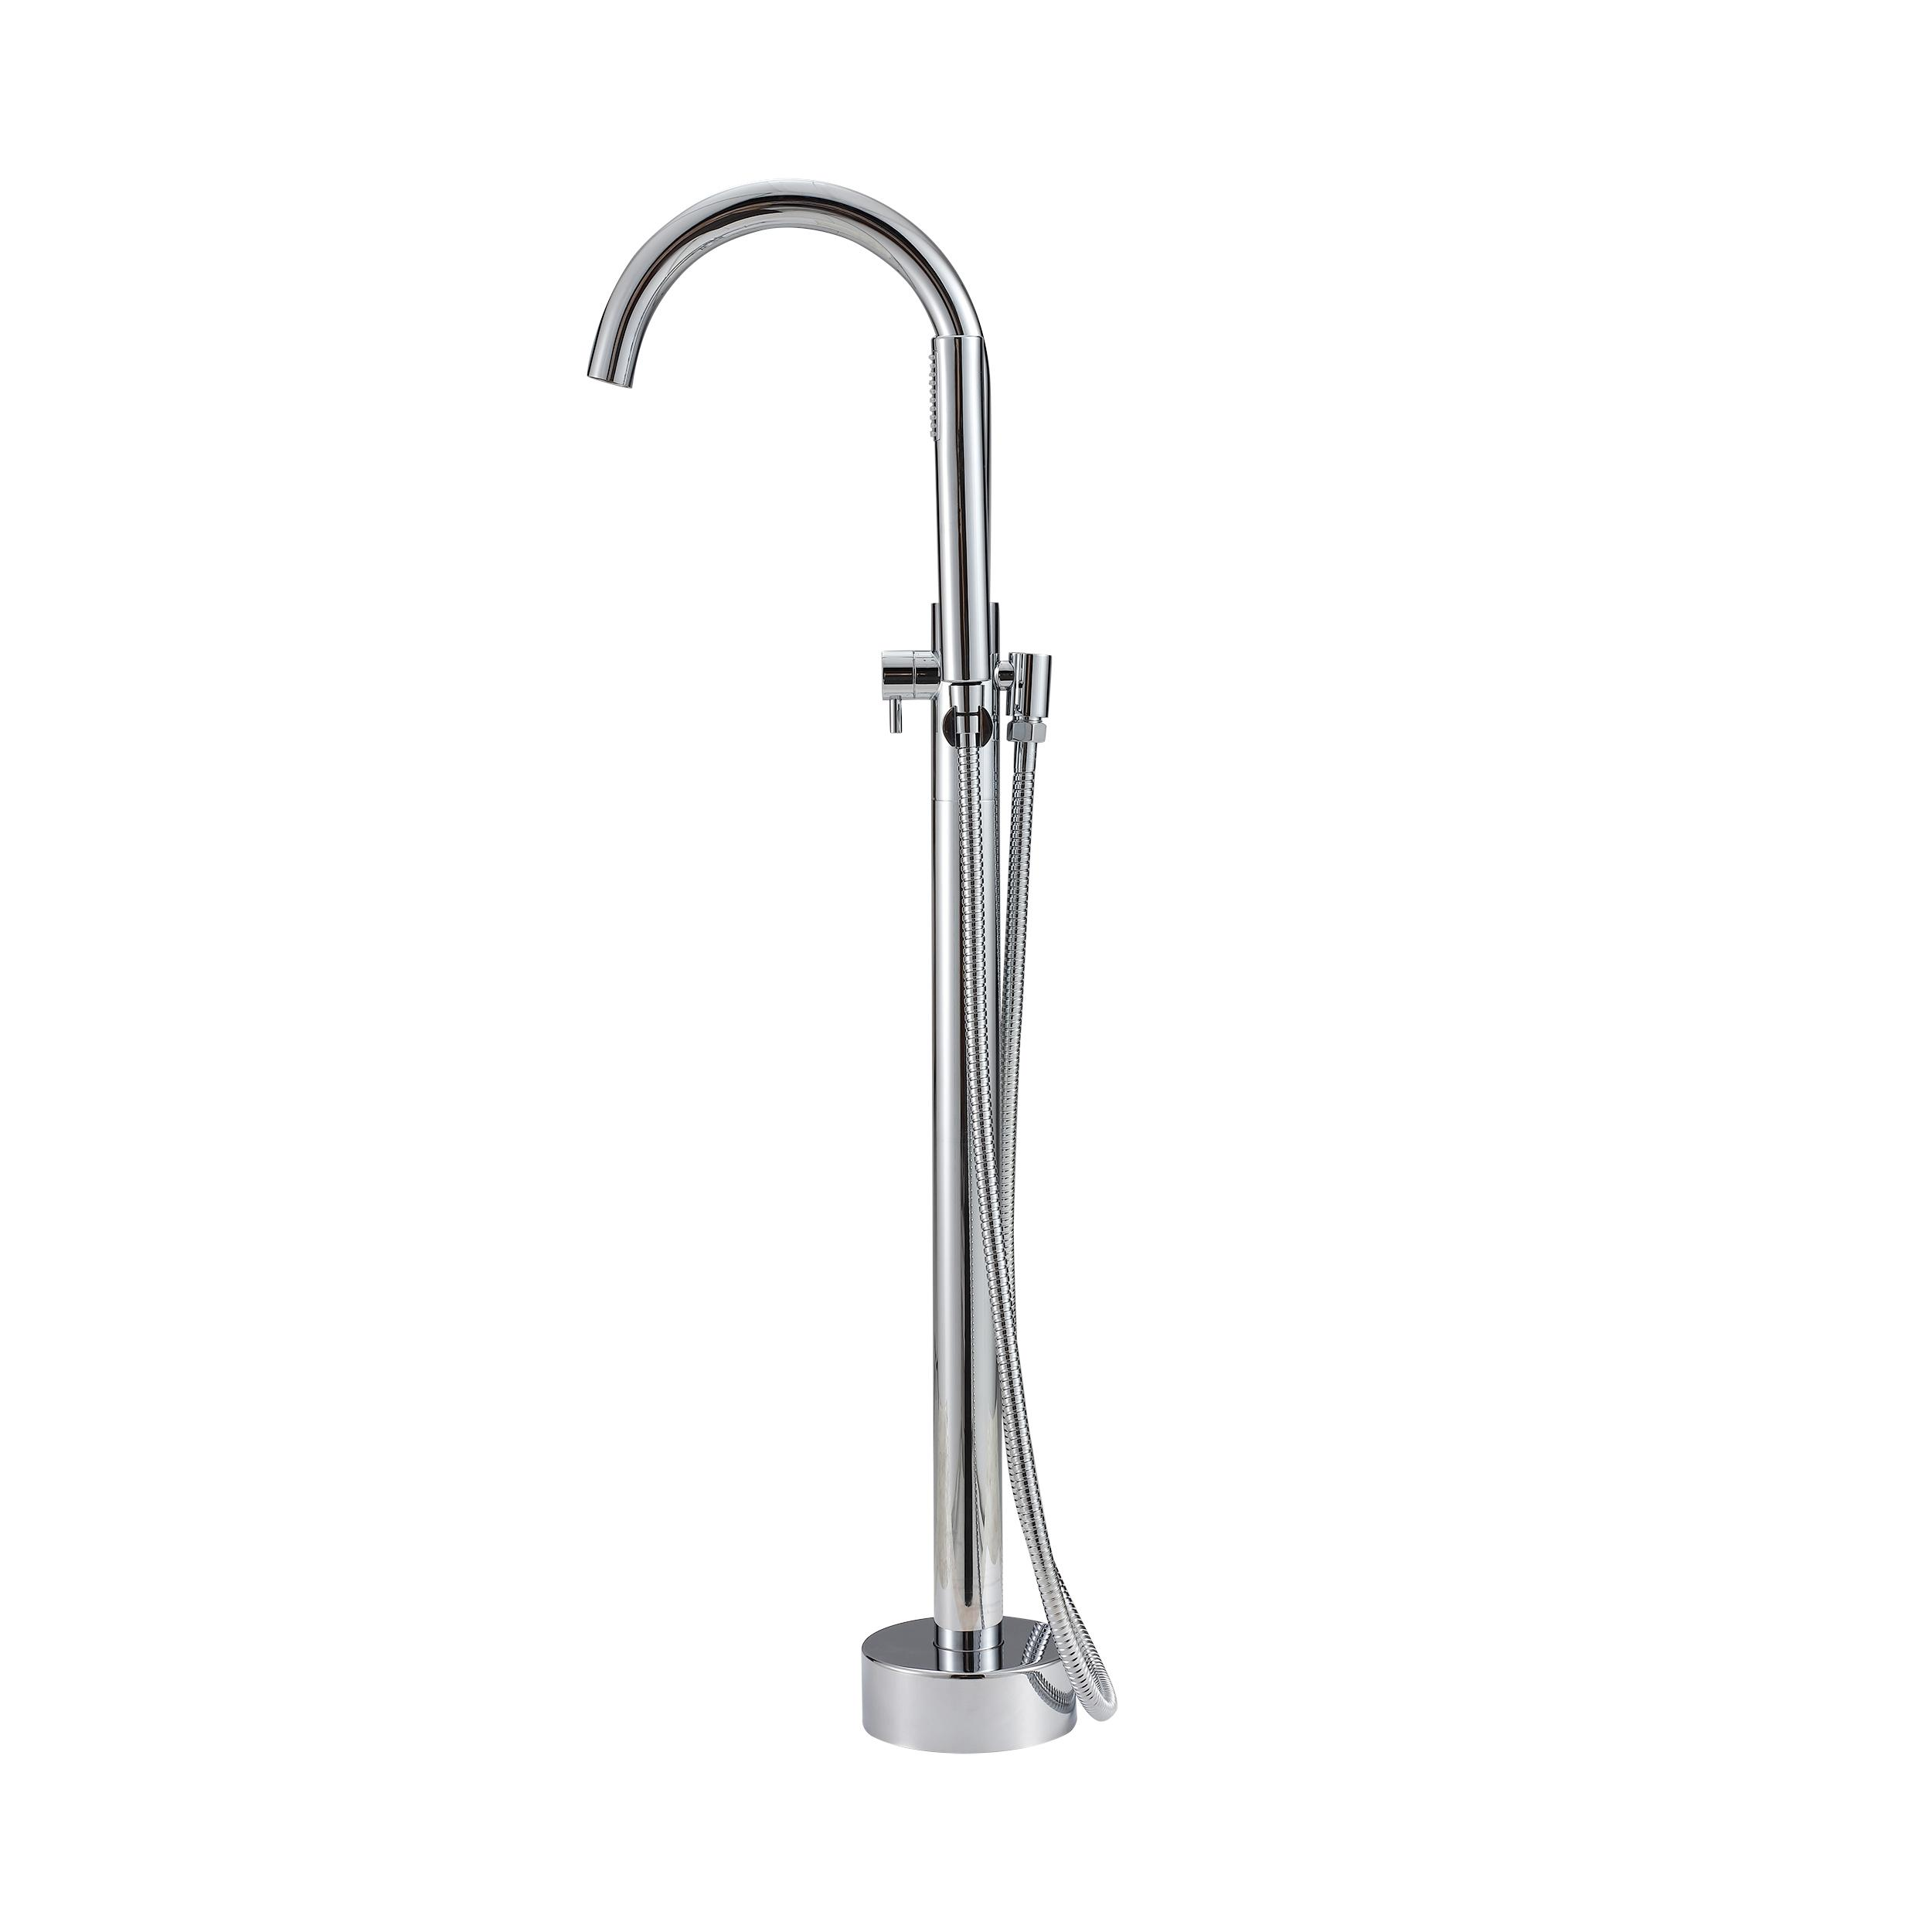 faucets bathtub fantasia shower clawfoot and tub filler floor waterfall mounted